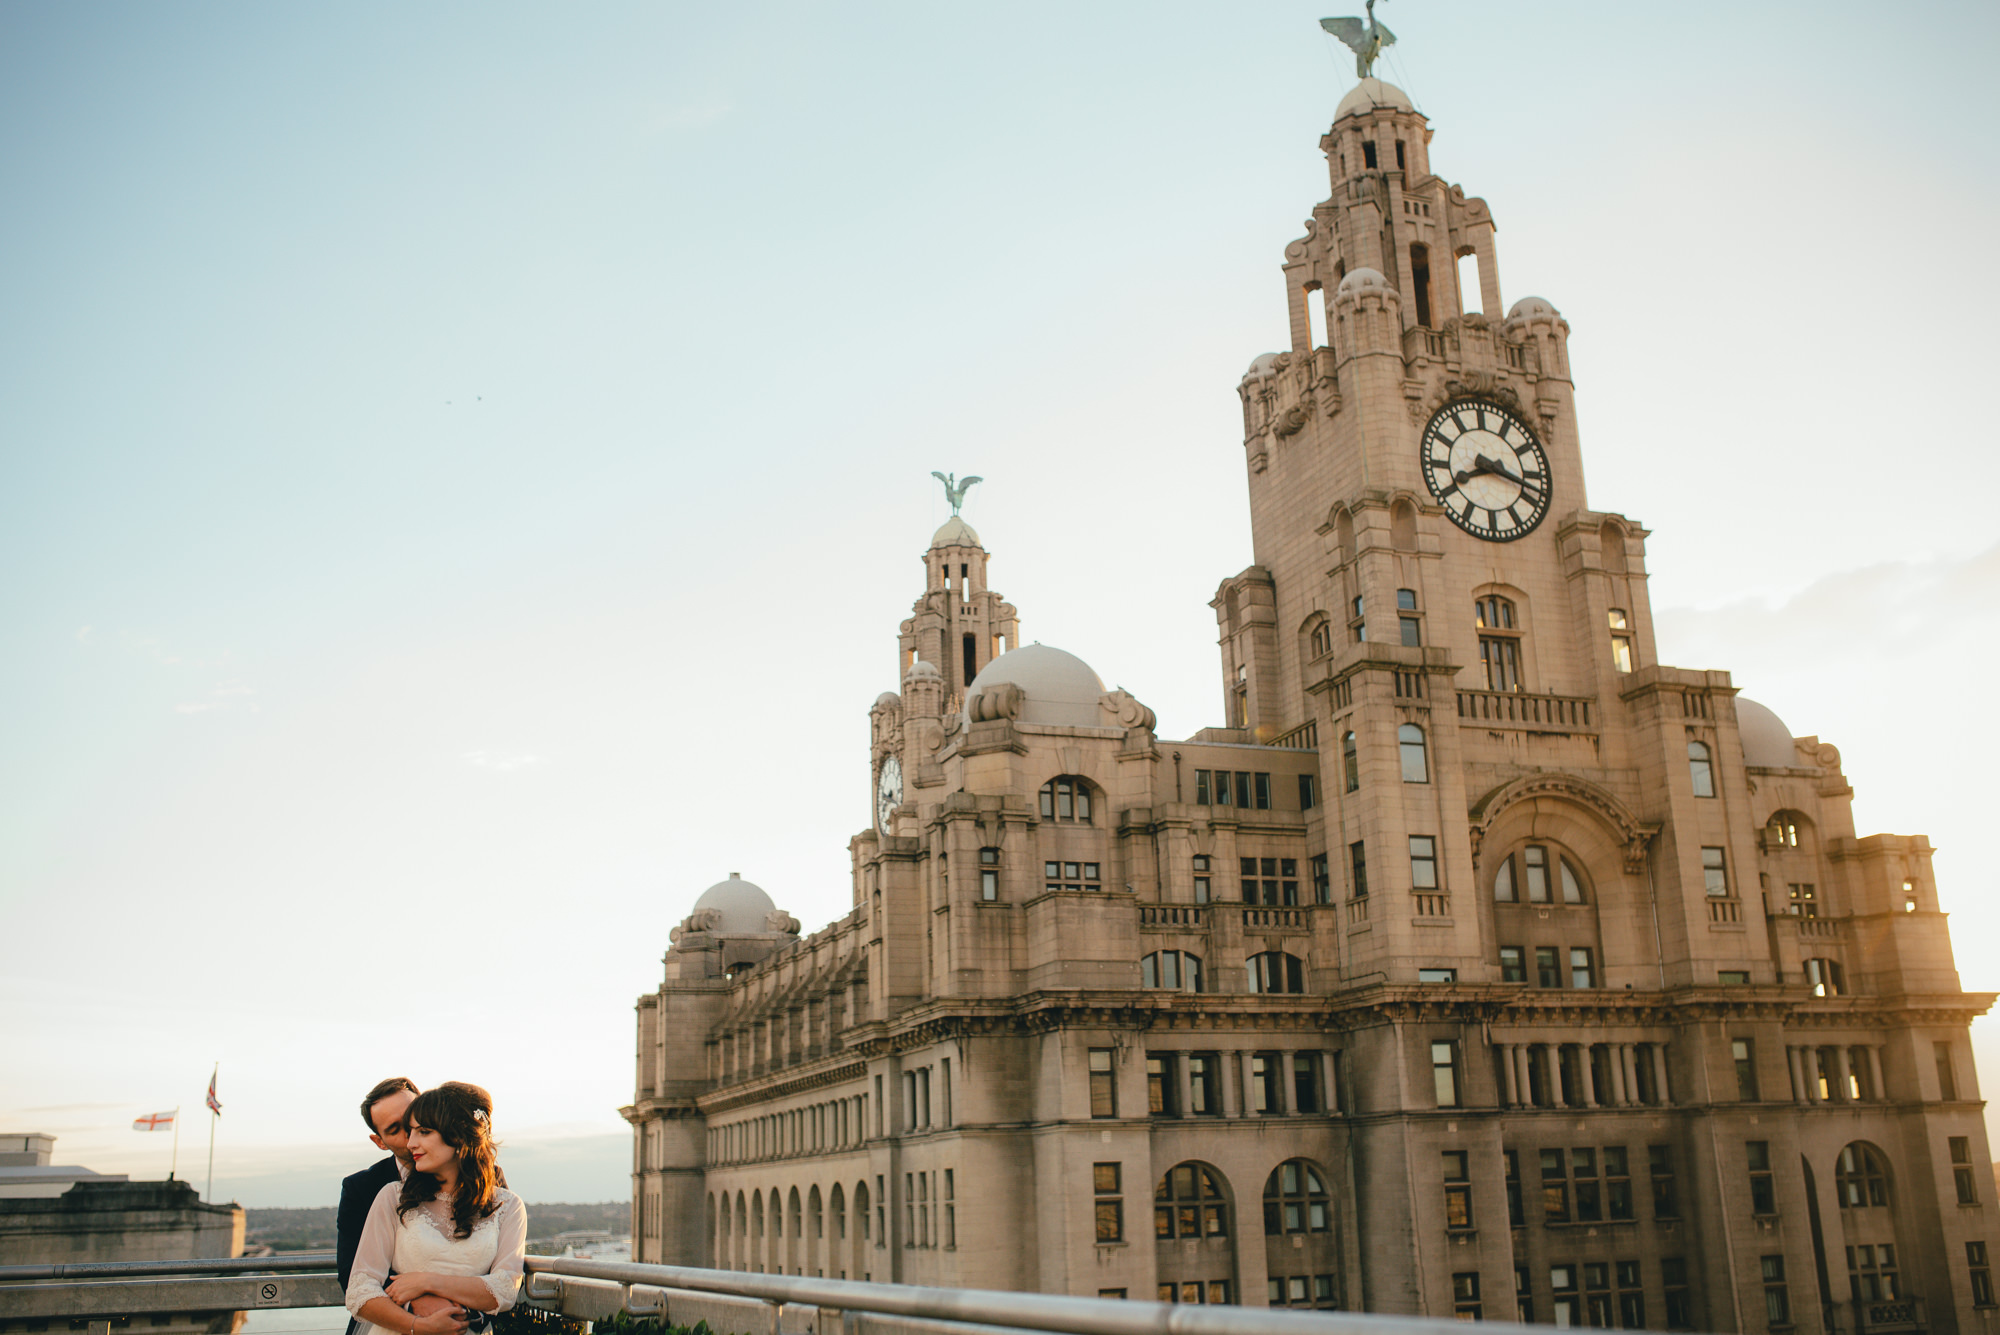 Oh my oh my wedding photography couple on roof by liver building at sunset